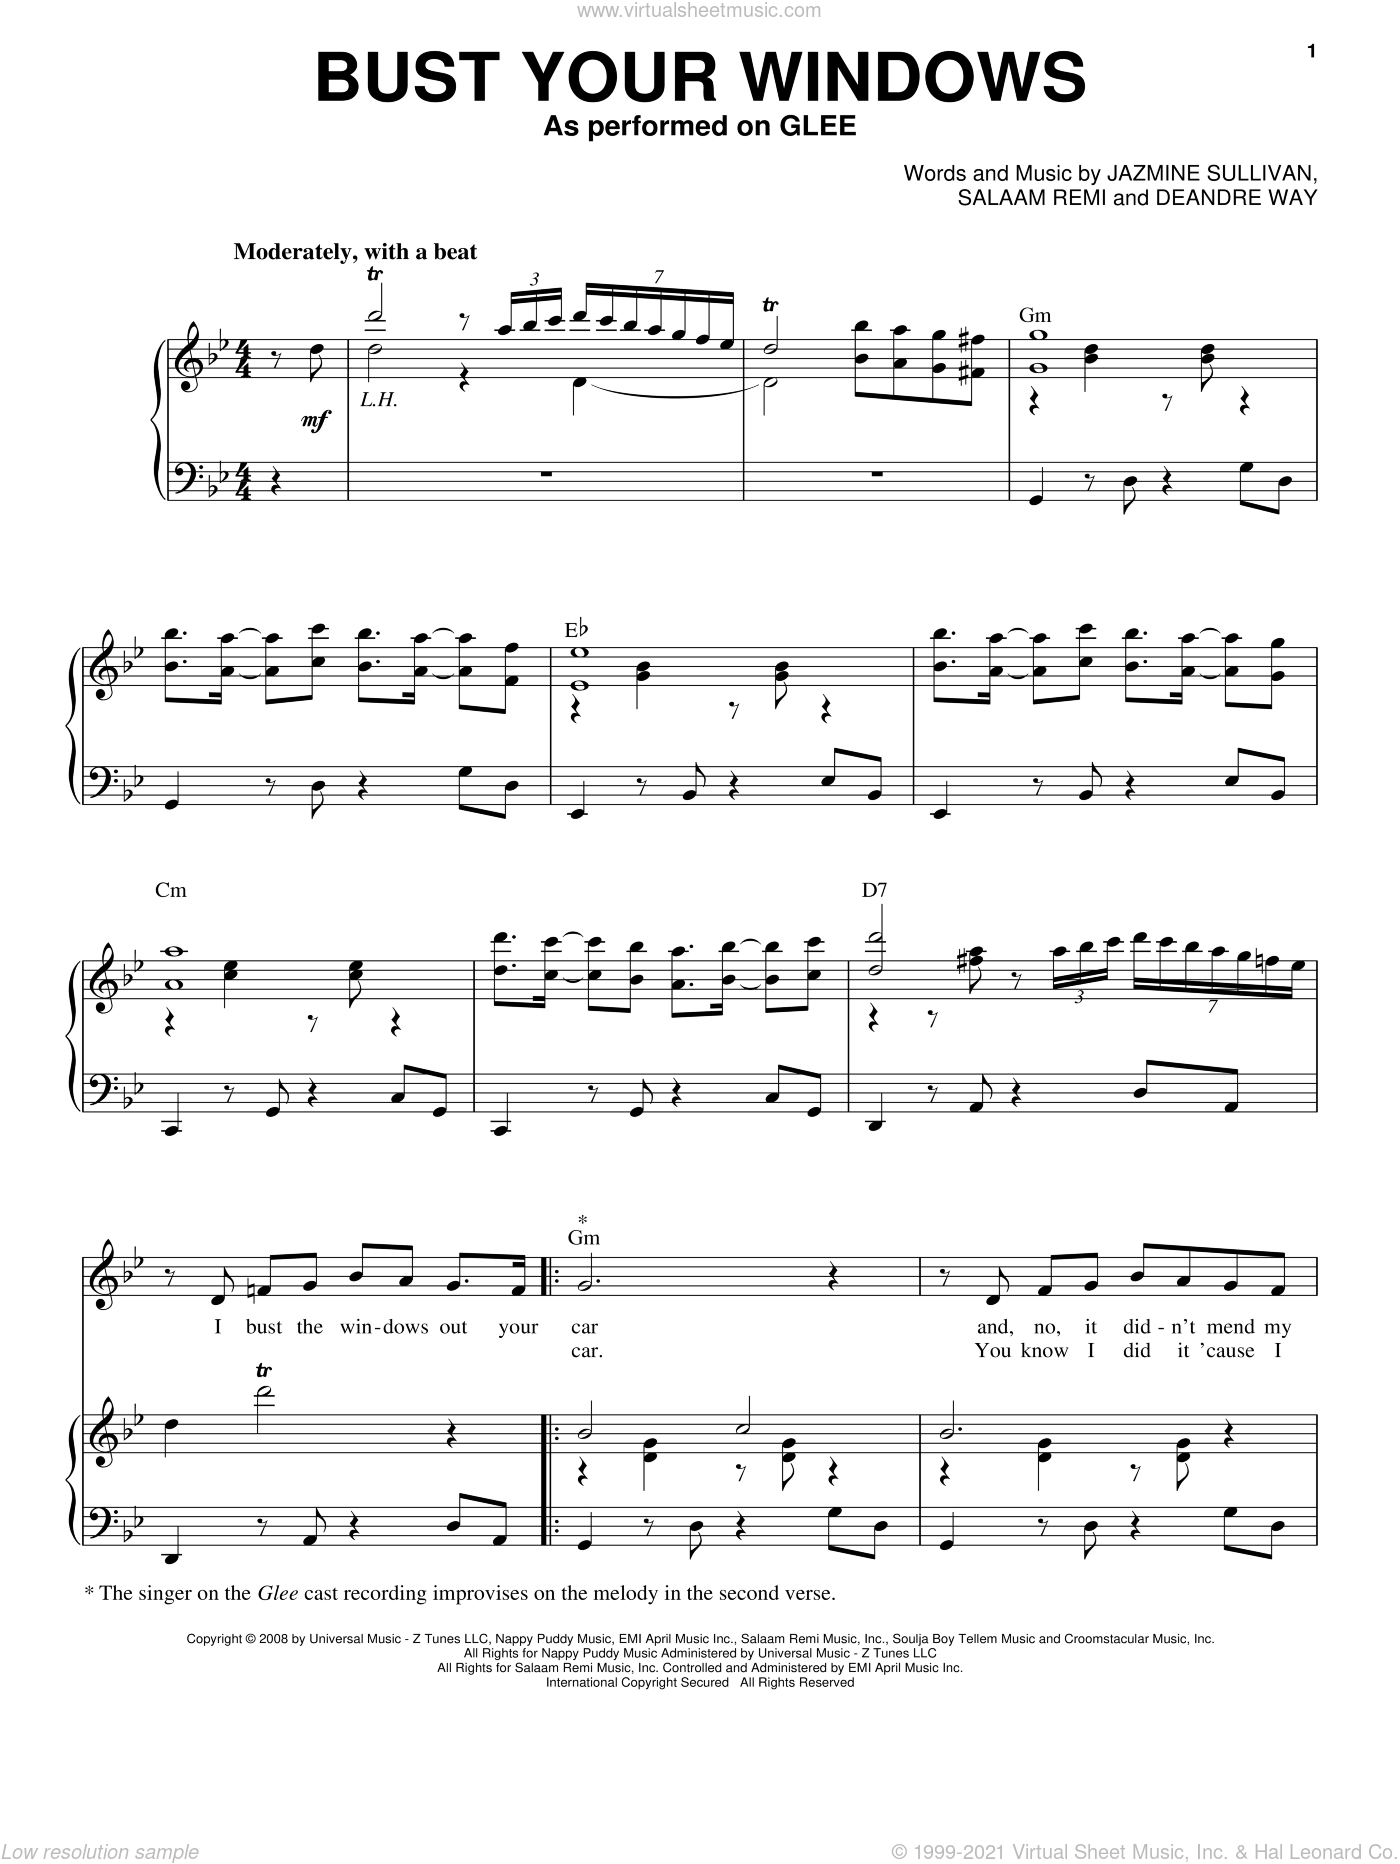 Bust Your Windows sheet music for voice and piano by Salaam Remi